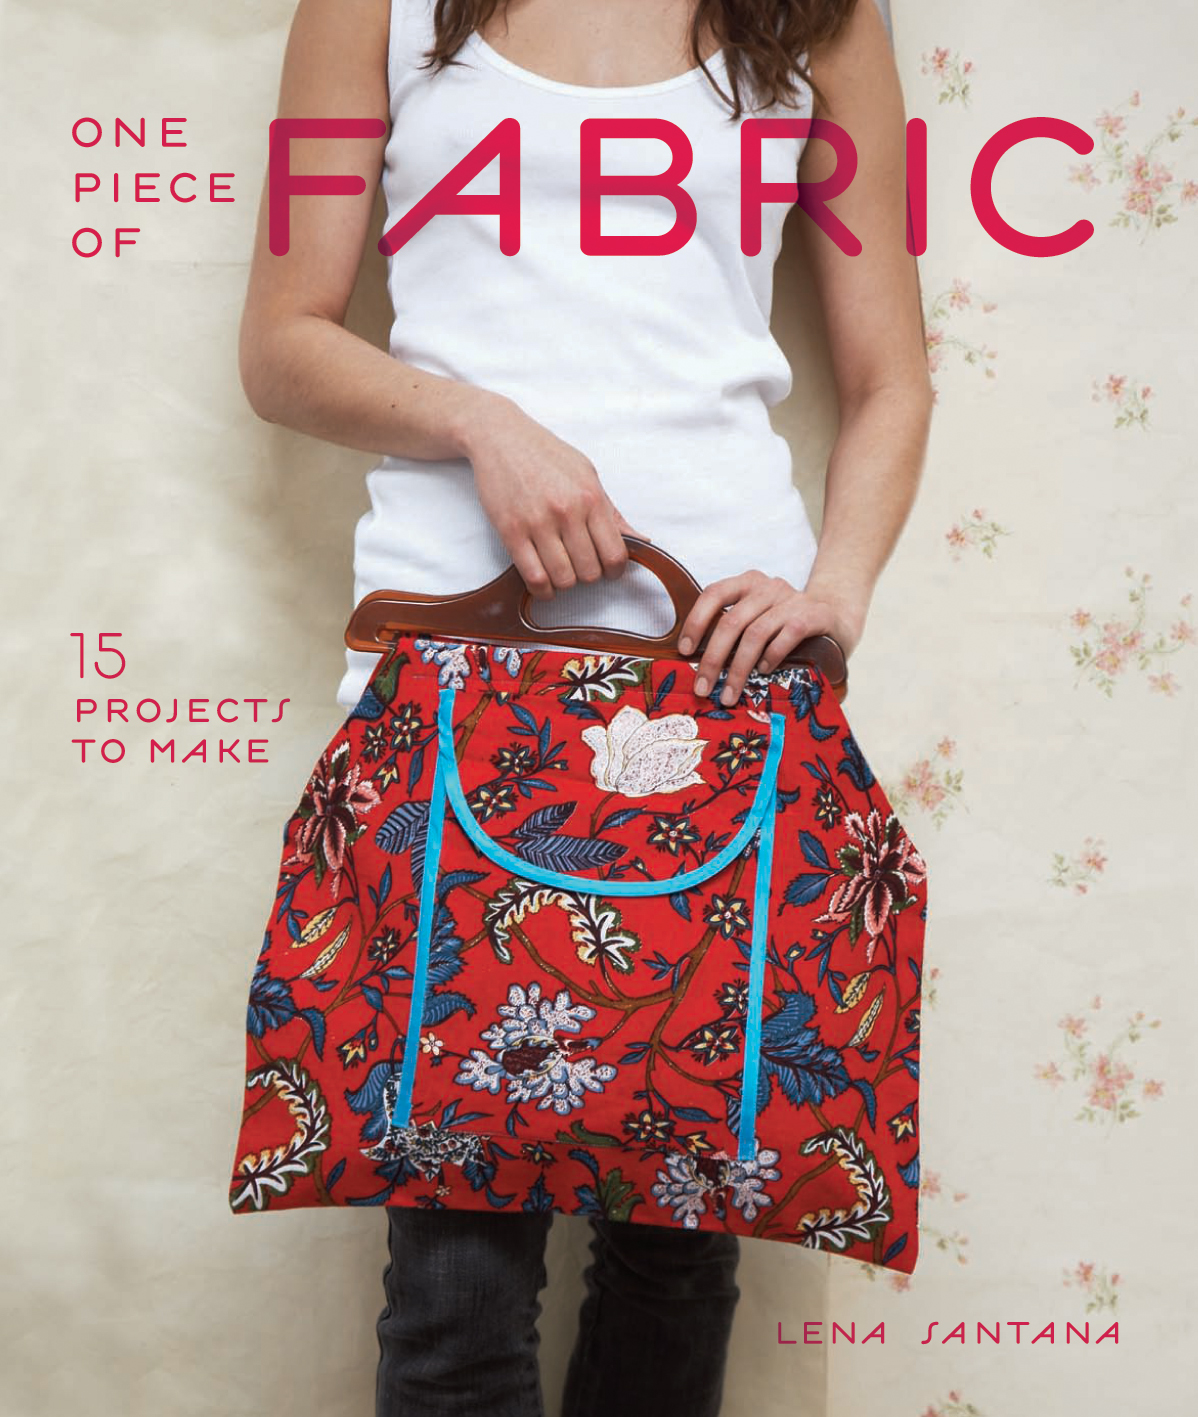 One Piece of Fabric